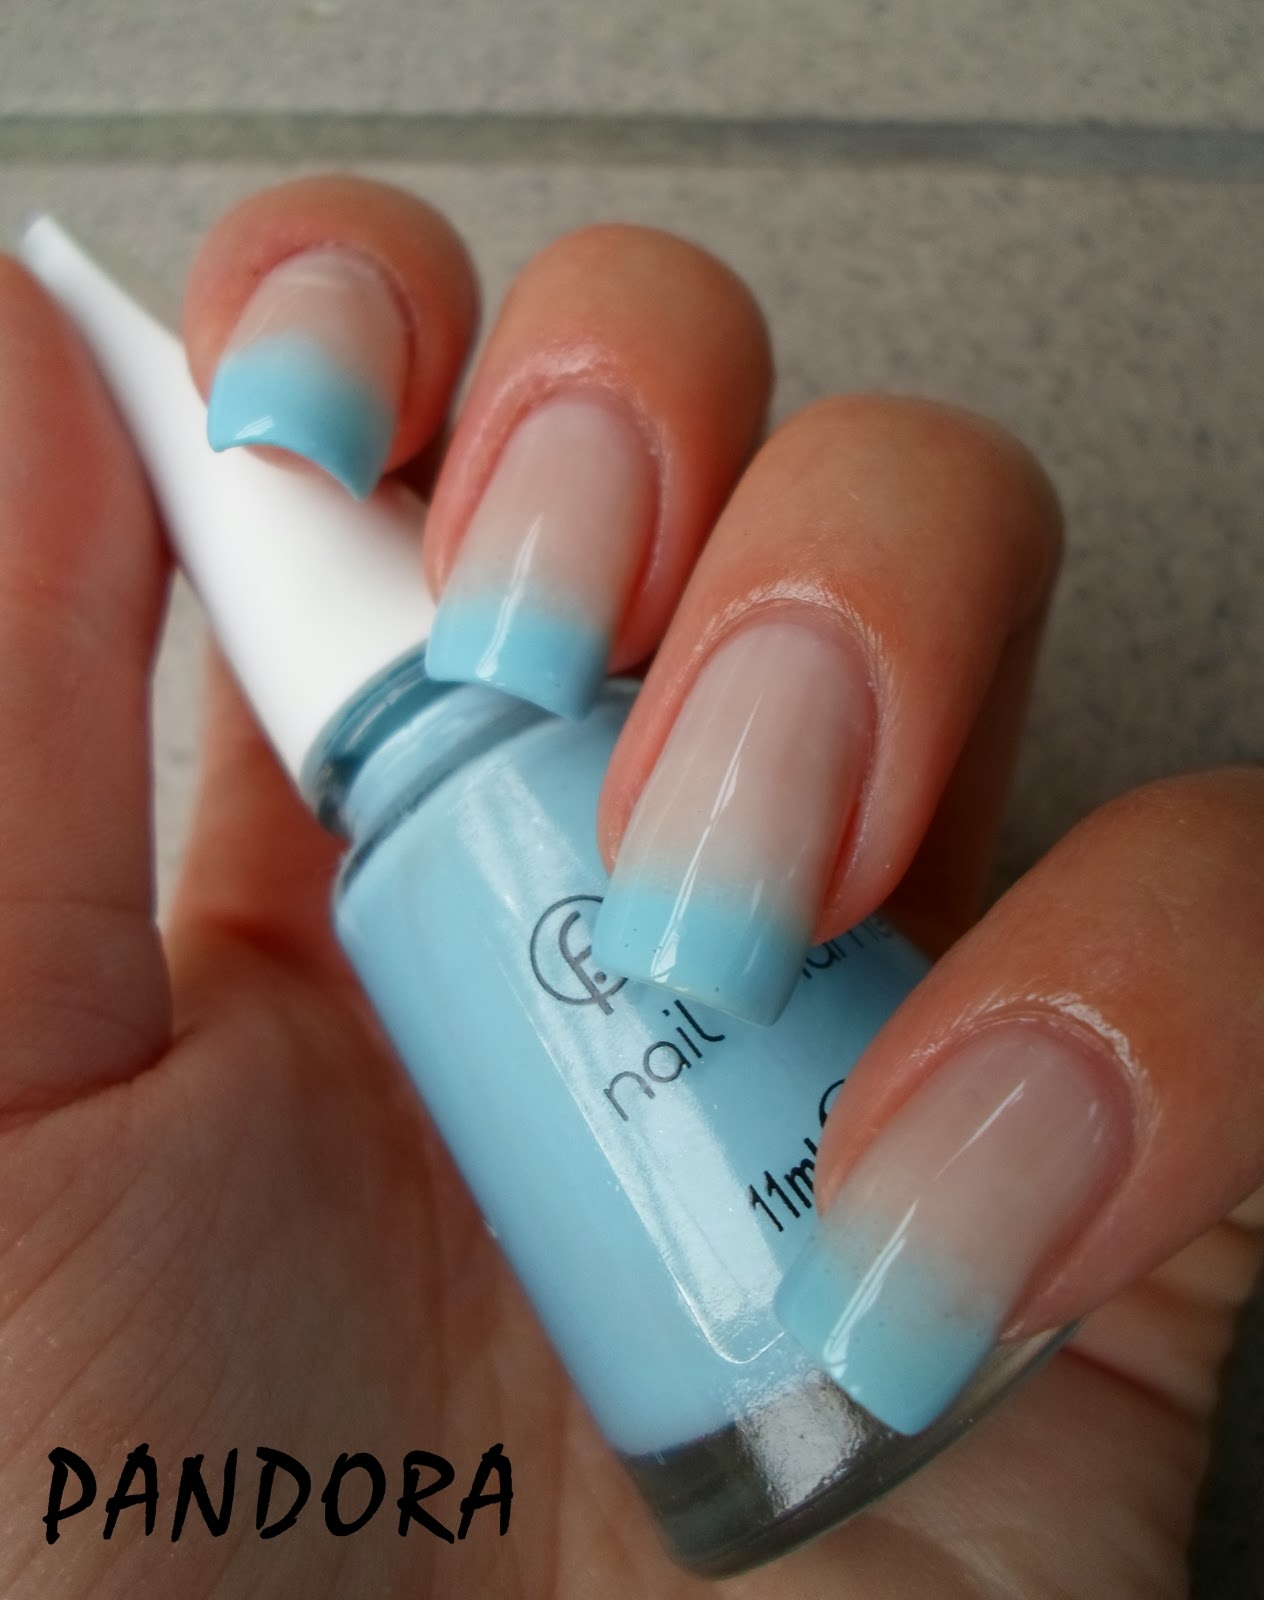 Gradient French Manicure: Pandora Nails: Gradient French